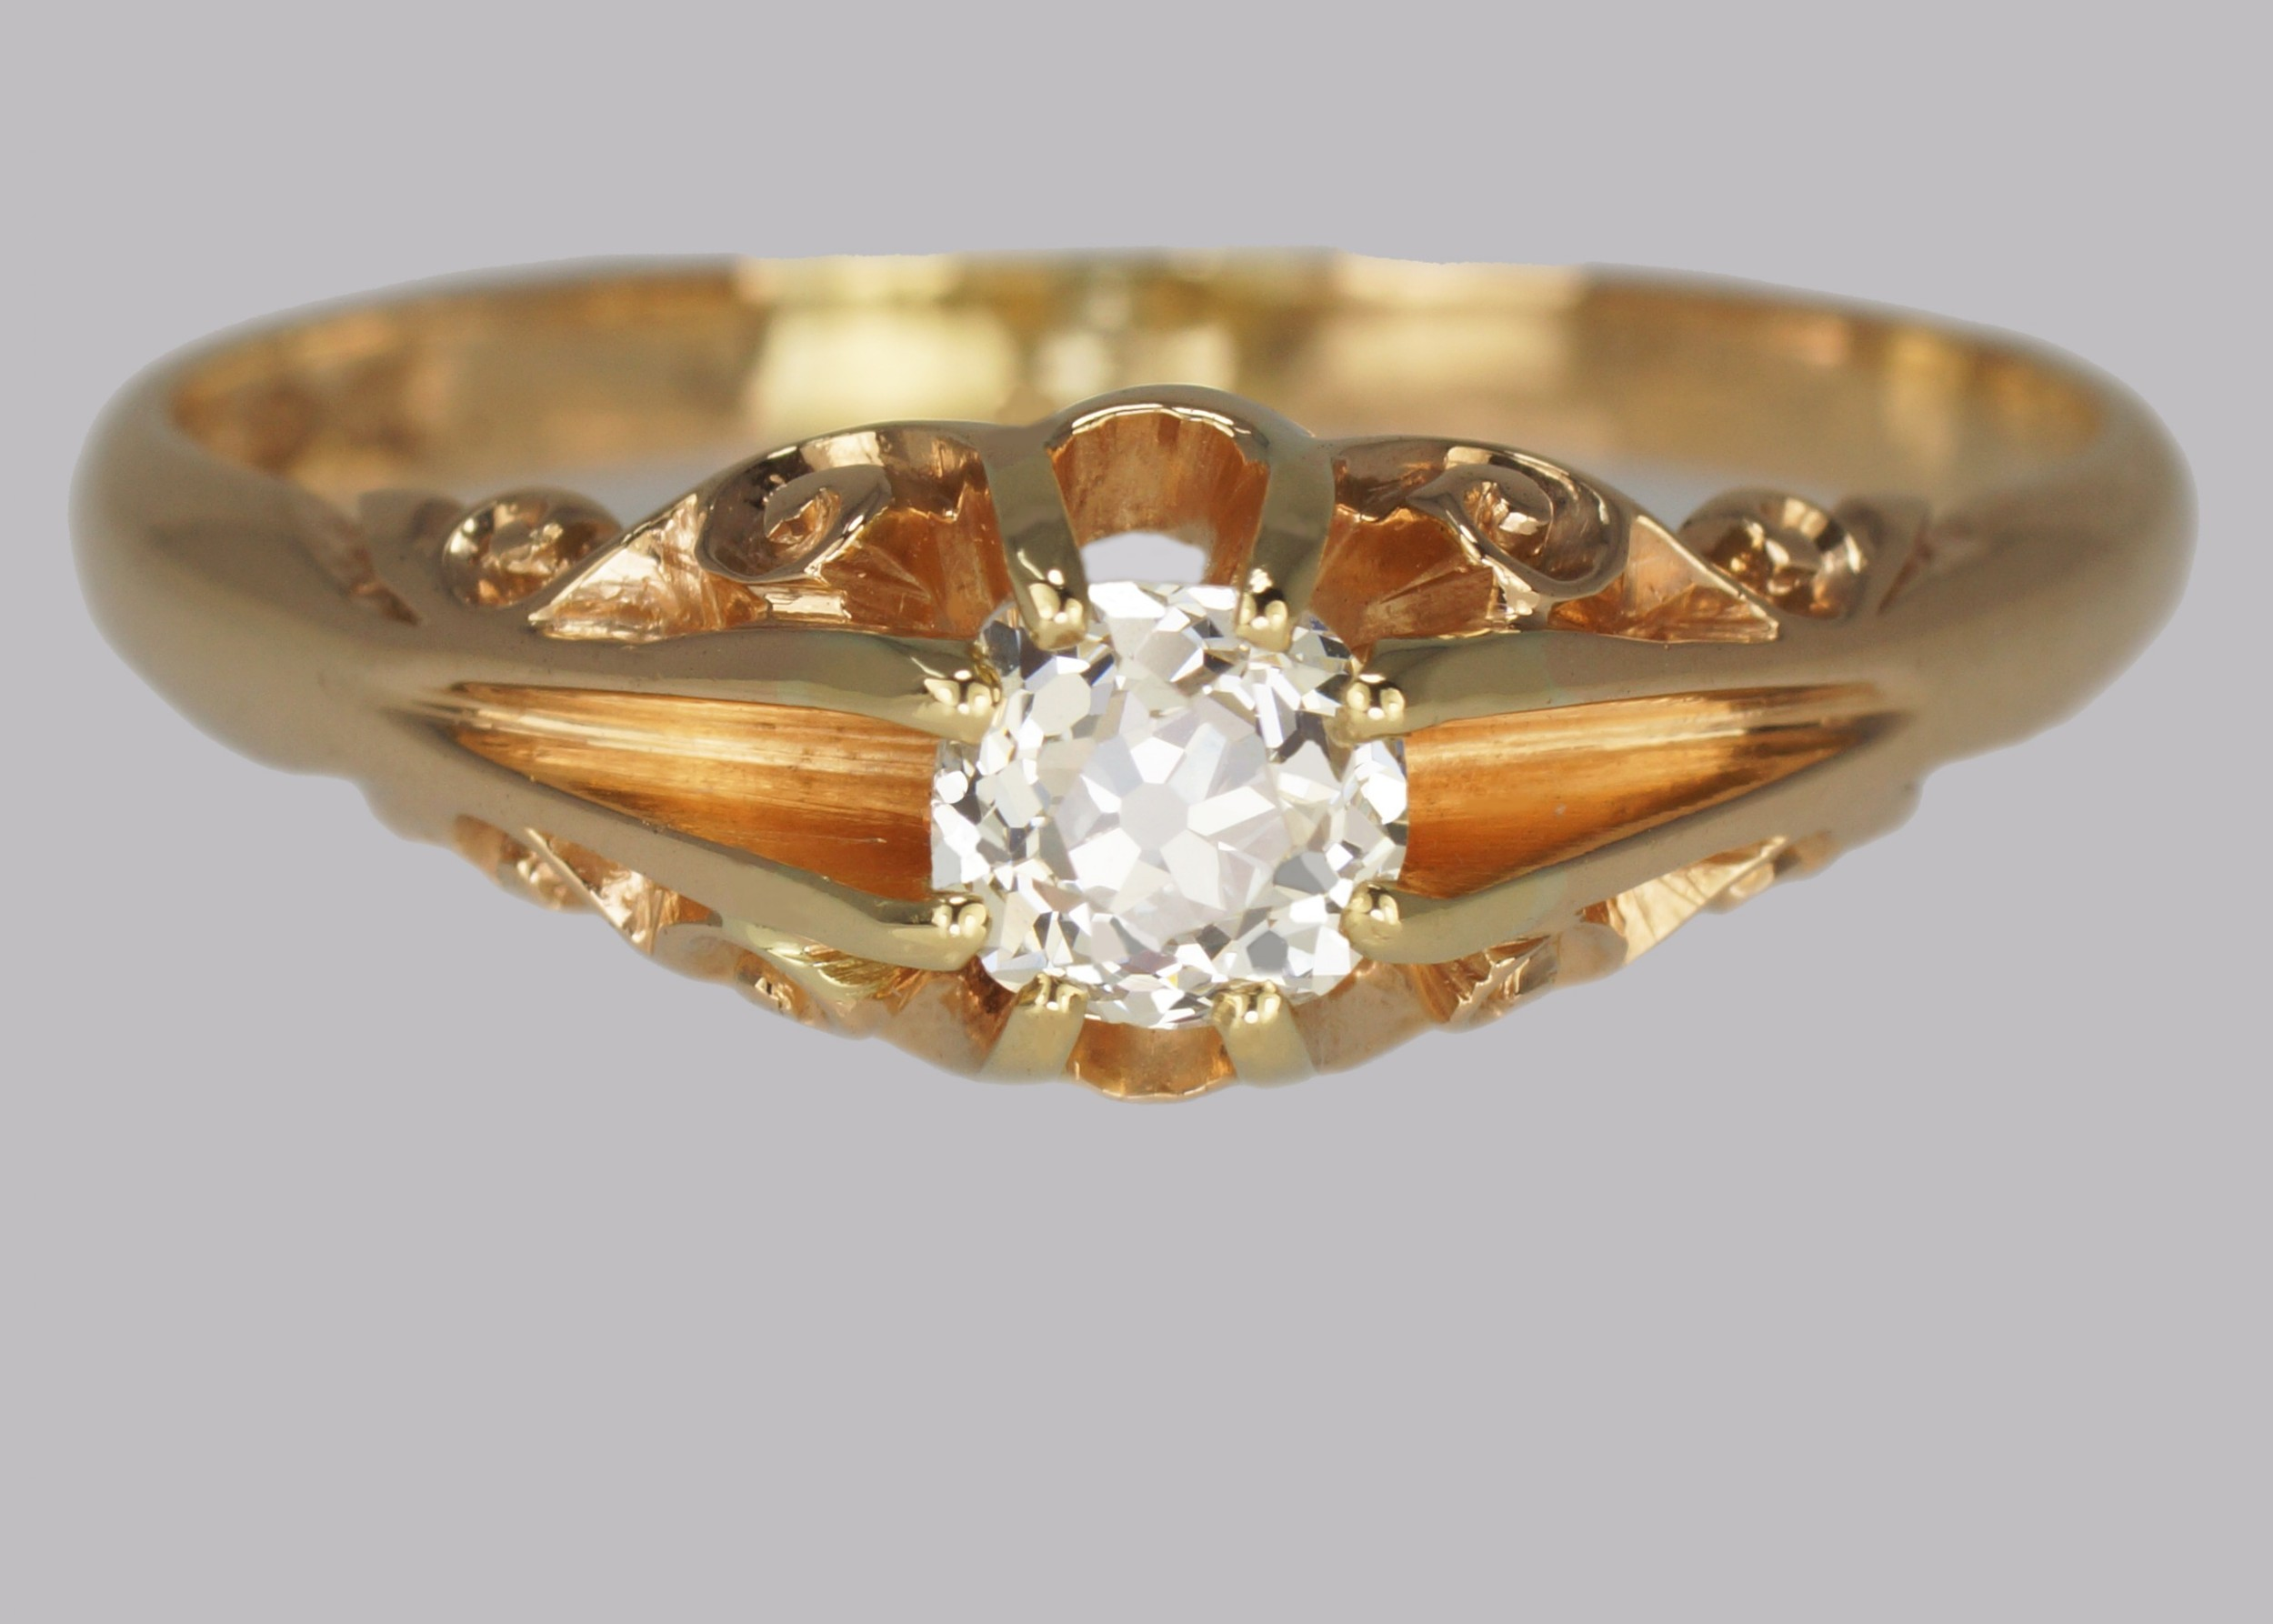 antique 05ct old cut diamond 18ct gold edwardian solitaire ring 1908 size v 12